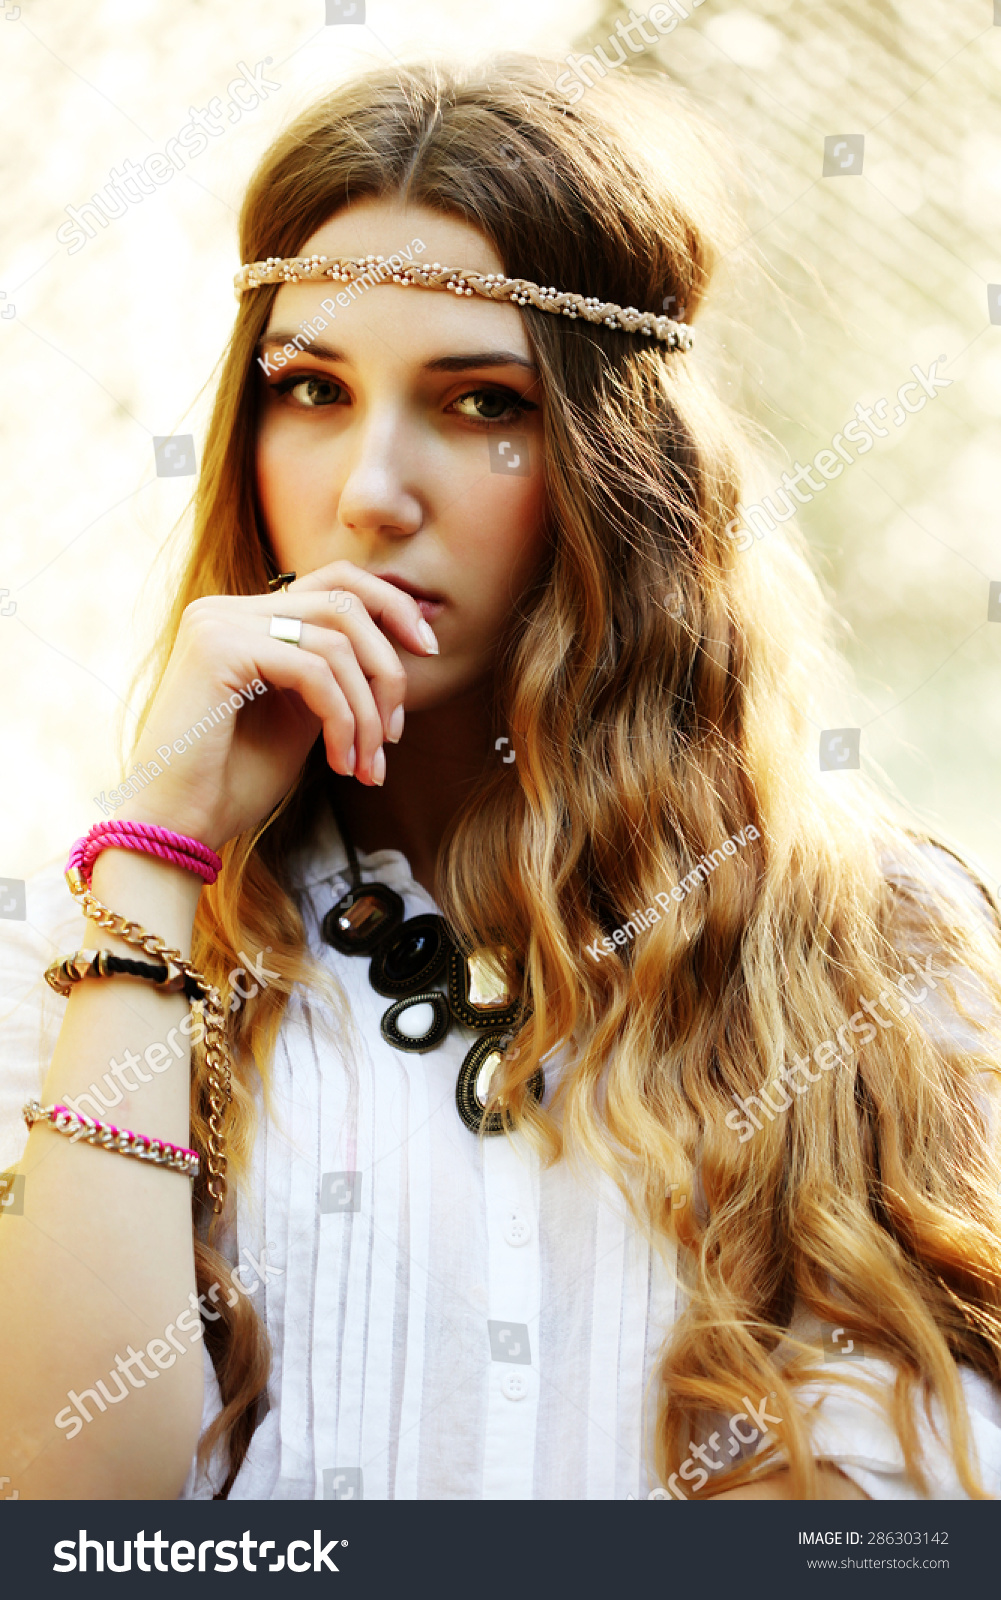 35f4f2e86af Fashion portrait of beautiful hippie young woman wearing boho chic clothes  and summer hat outdoors.